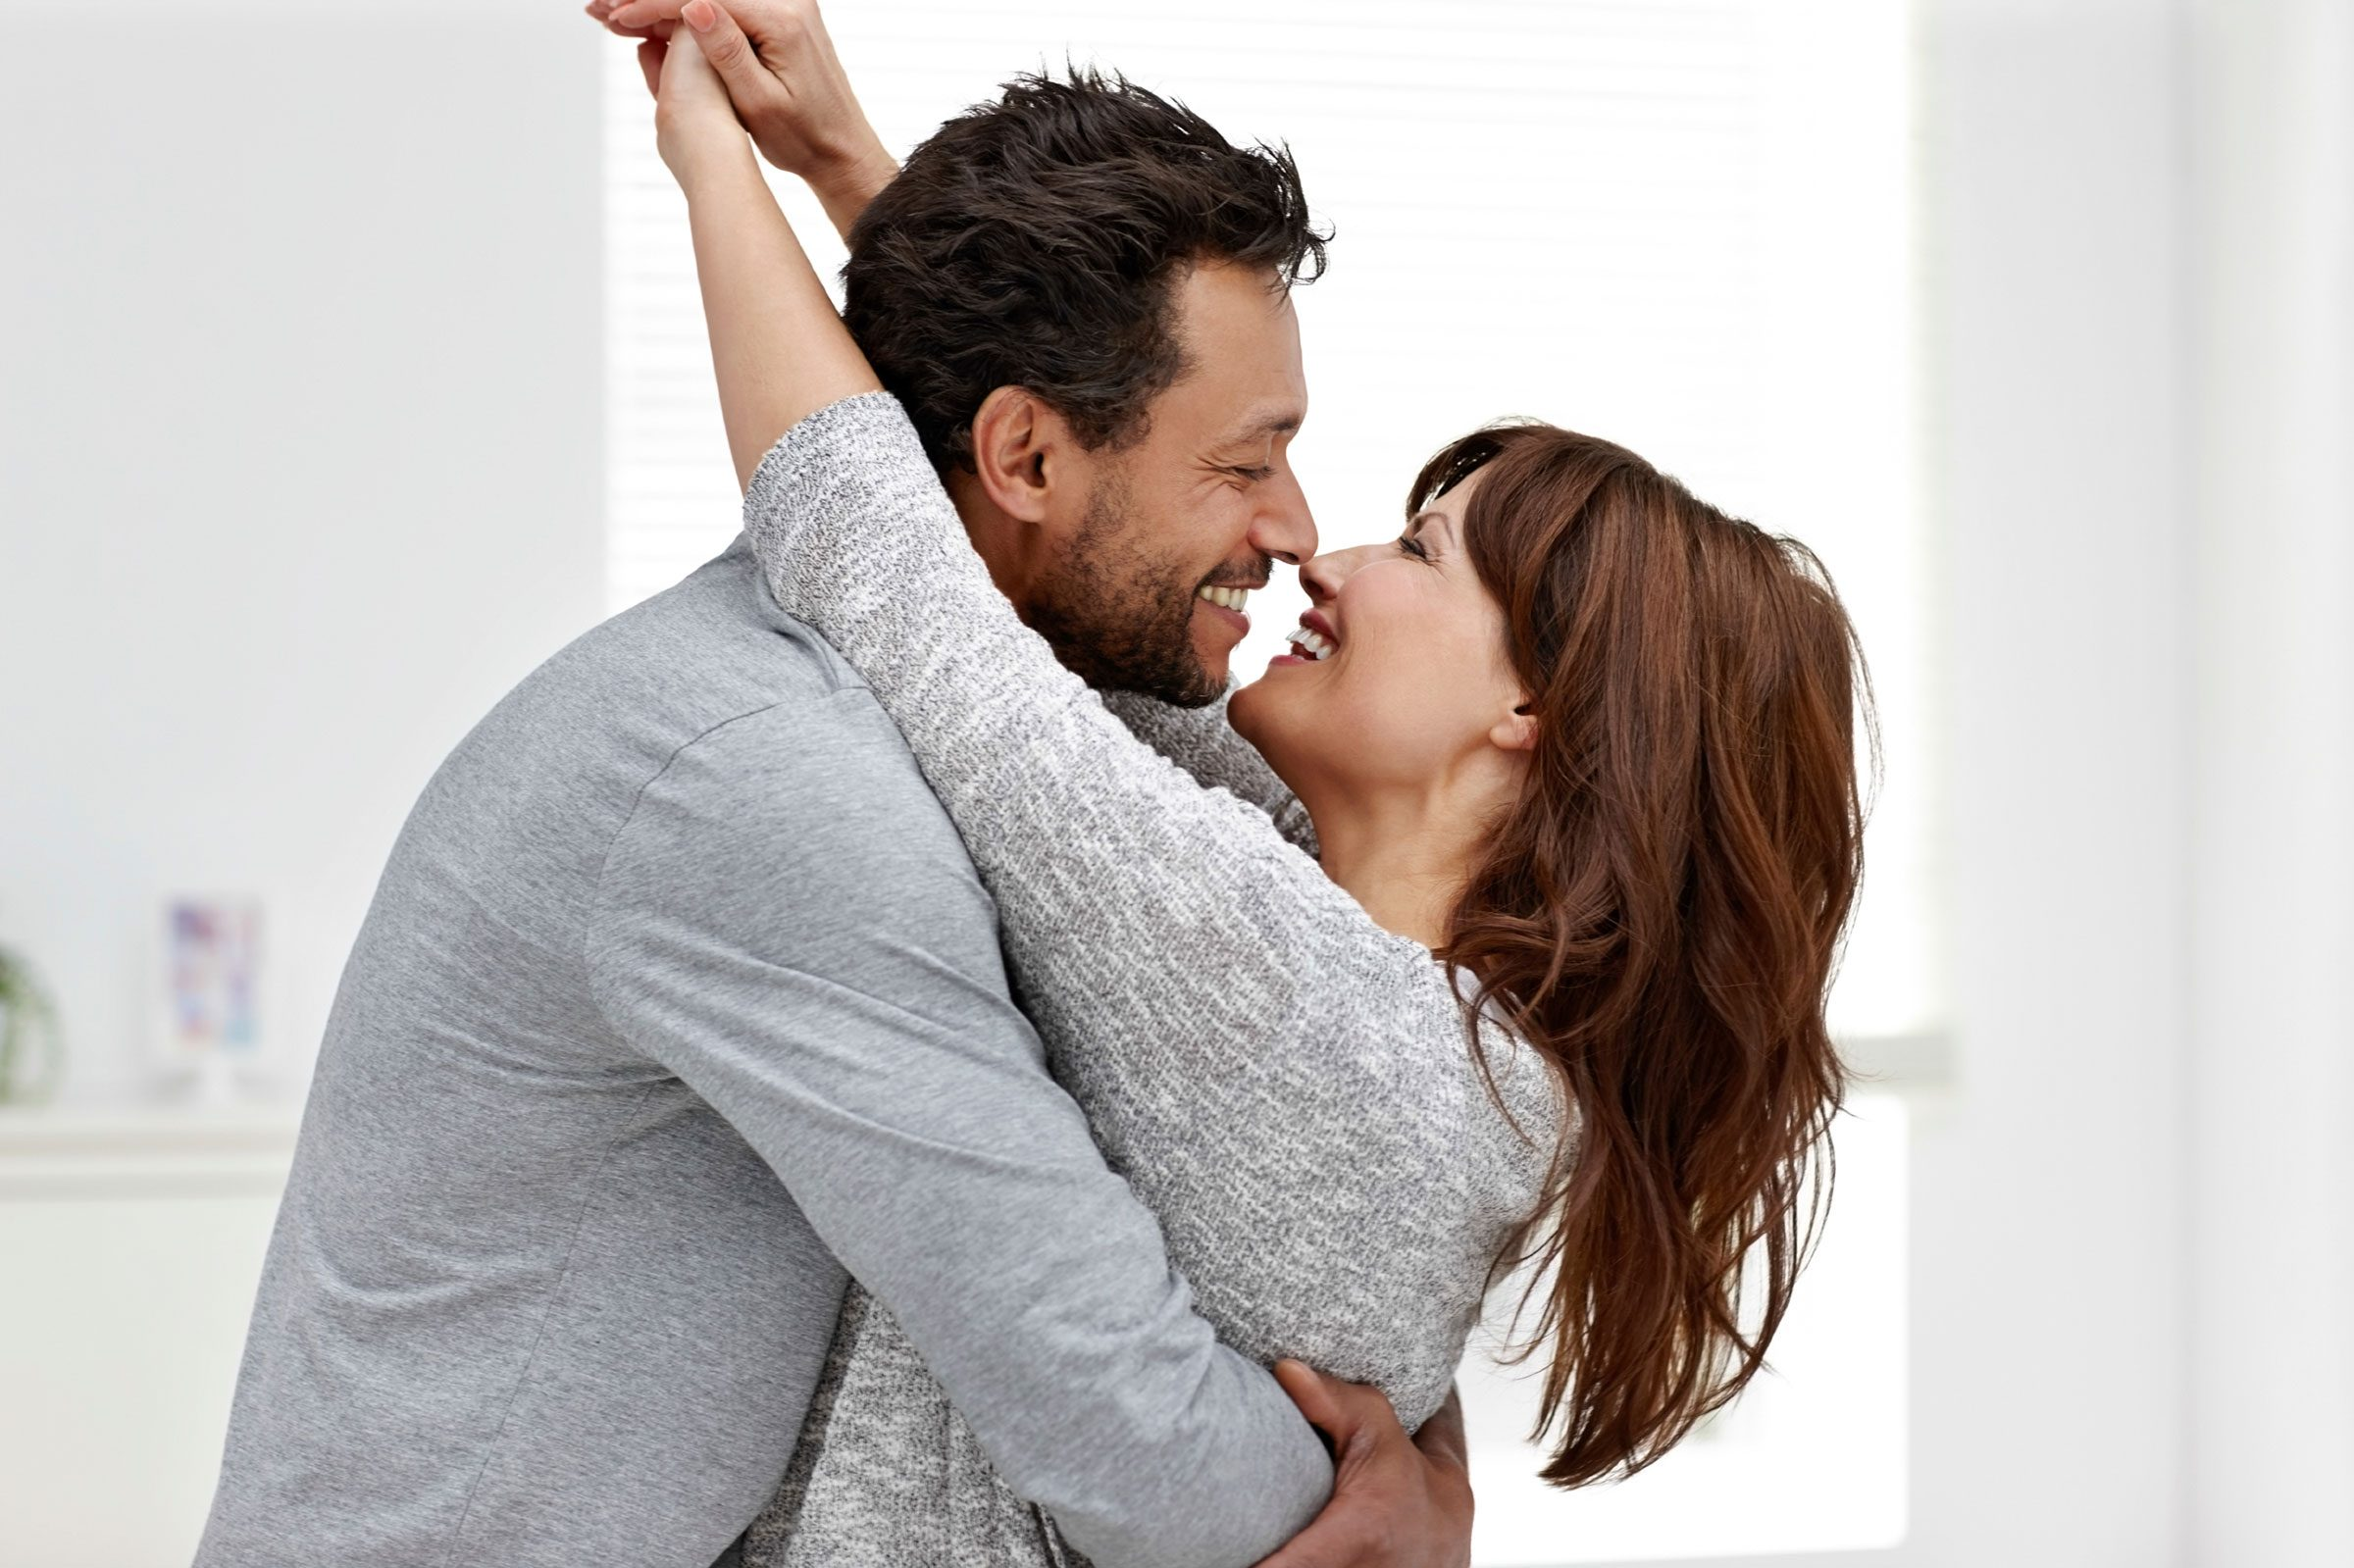 winterville muslim dating site Welcome to lovehabibi as one of the leading arab dating and muslim dating websites there are plenty of online dating sites to choose from but what makes.